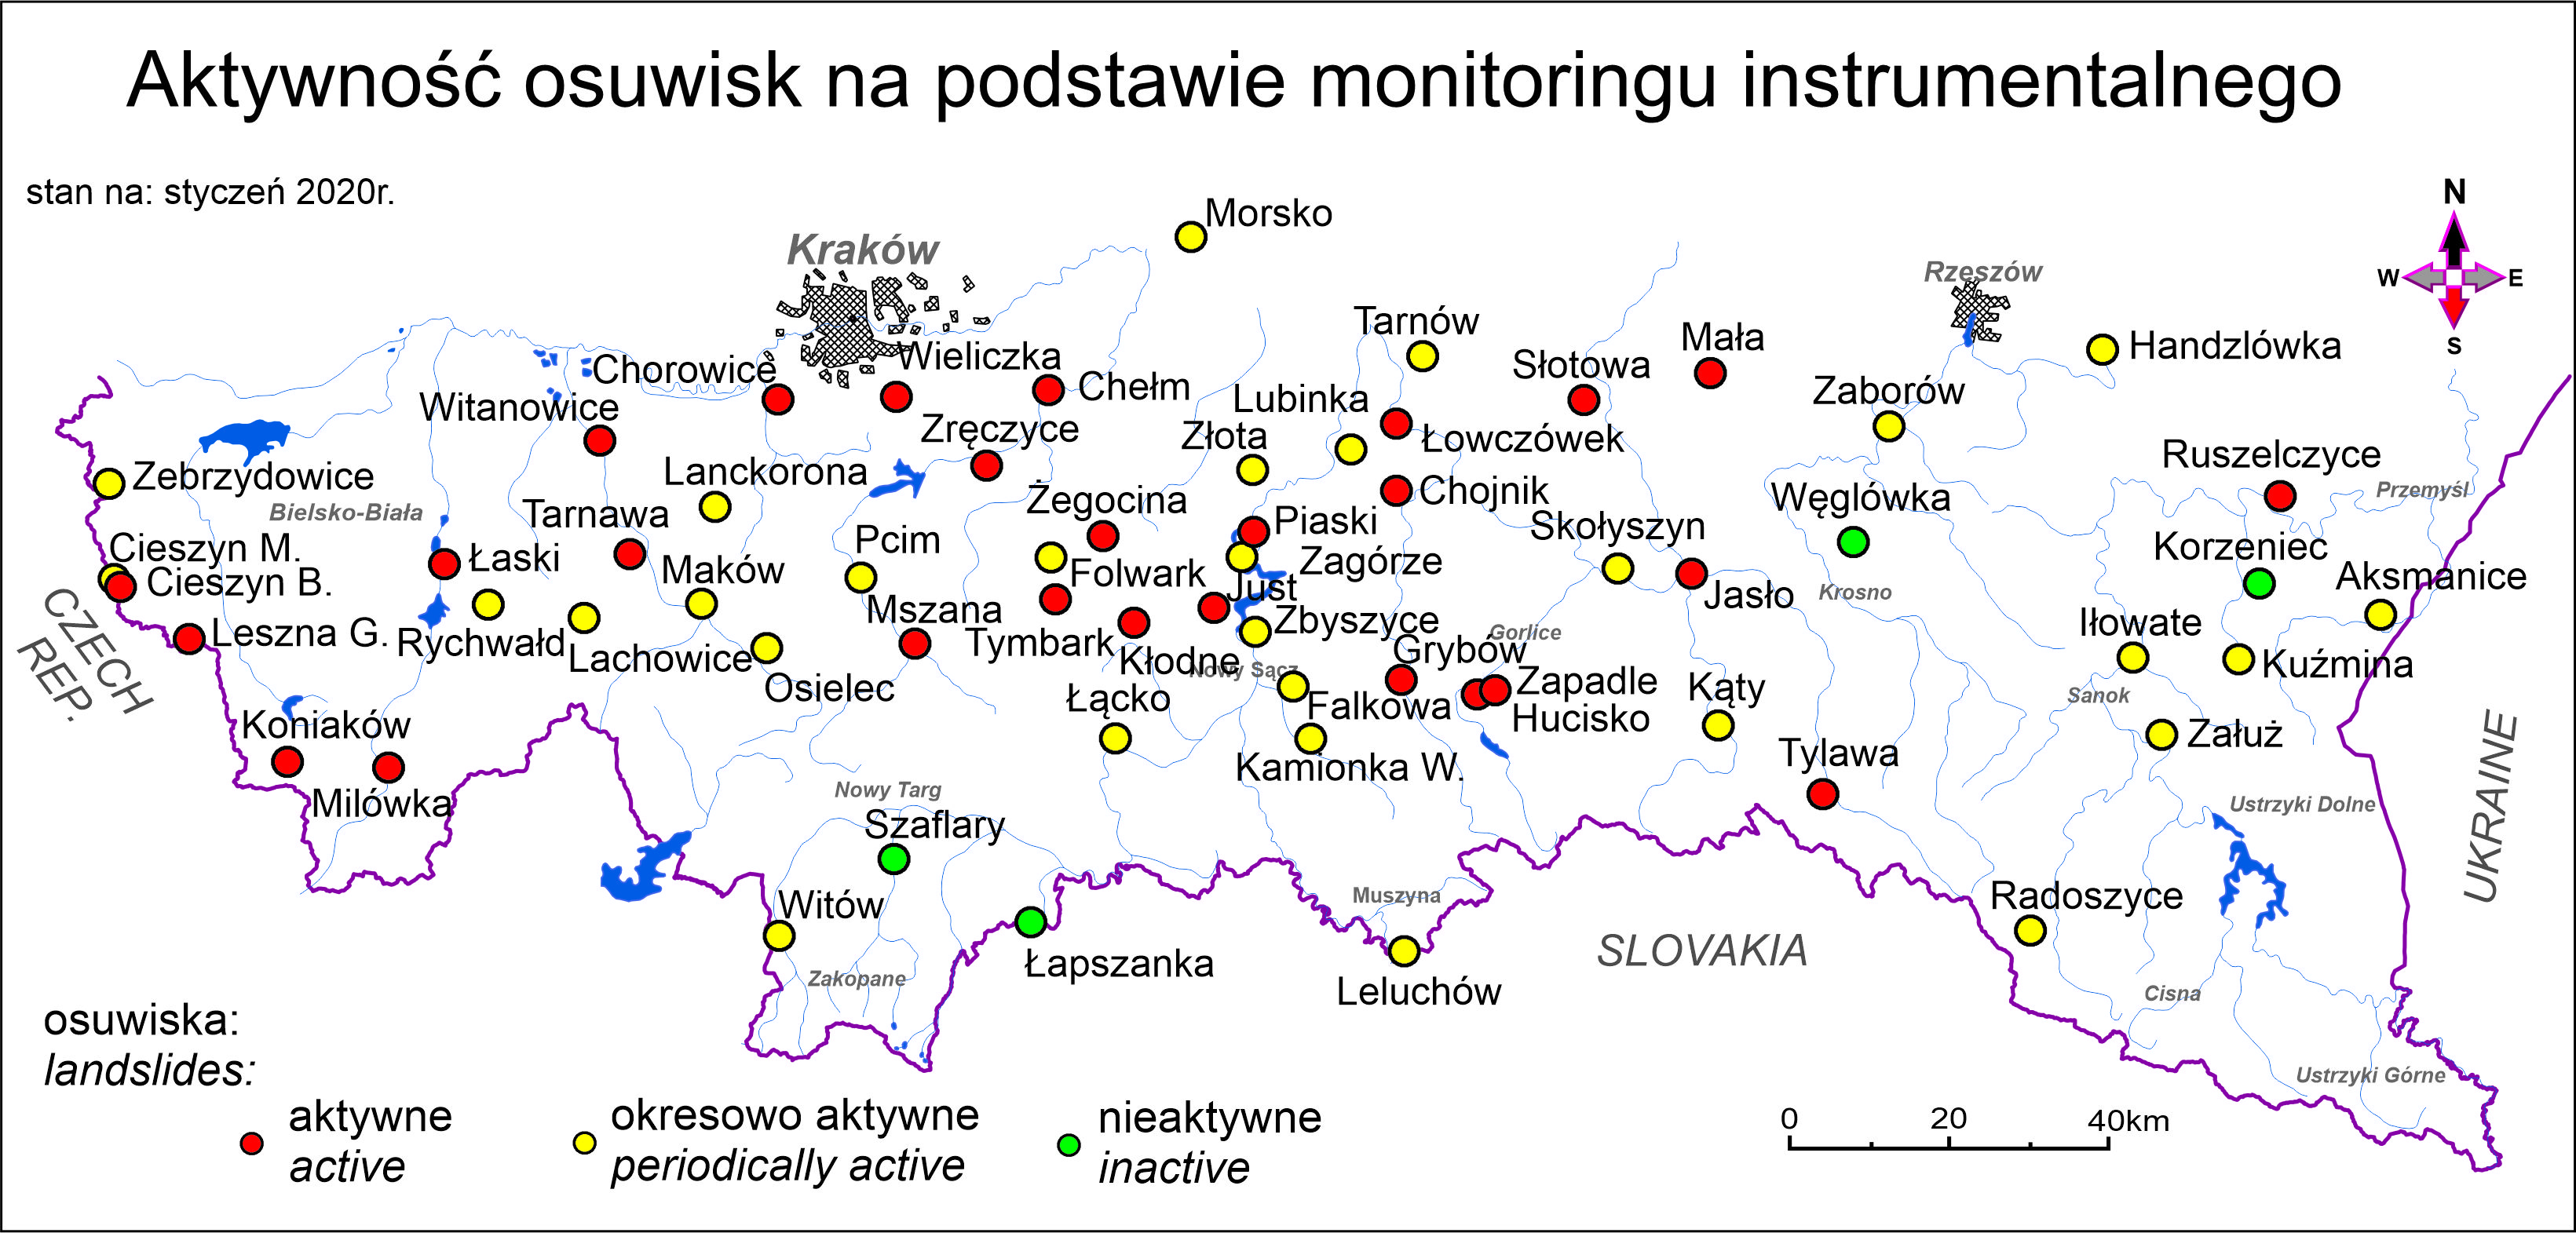 monitoring osuwisk 2020